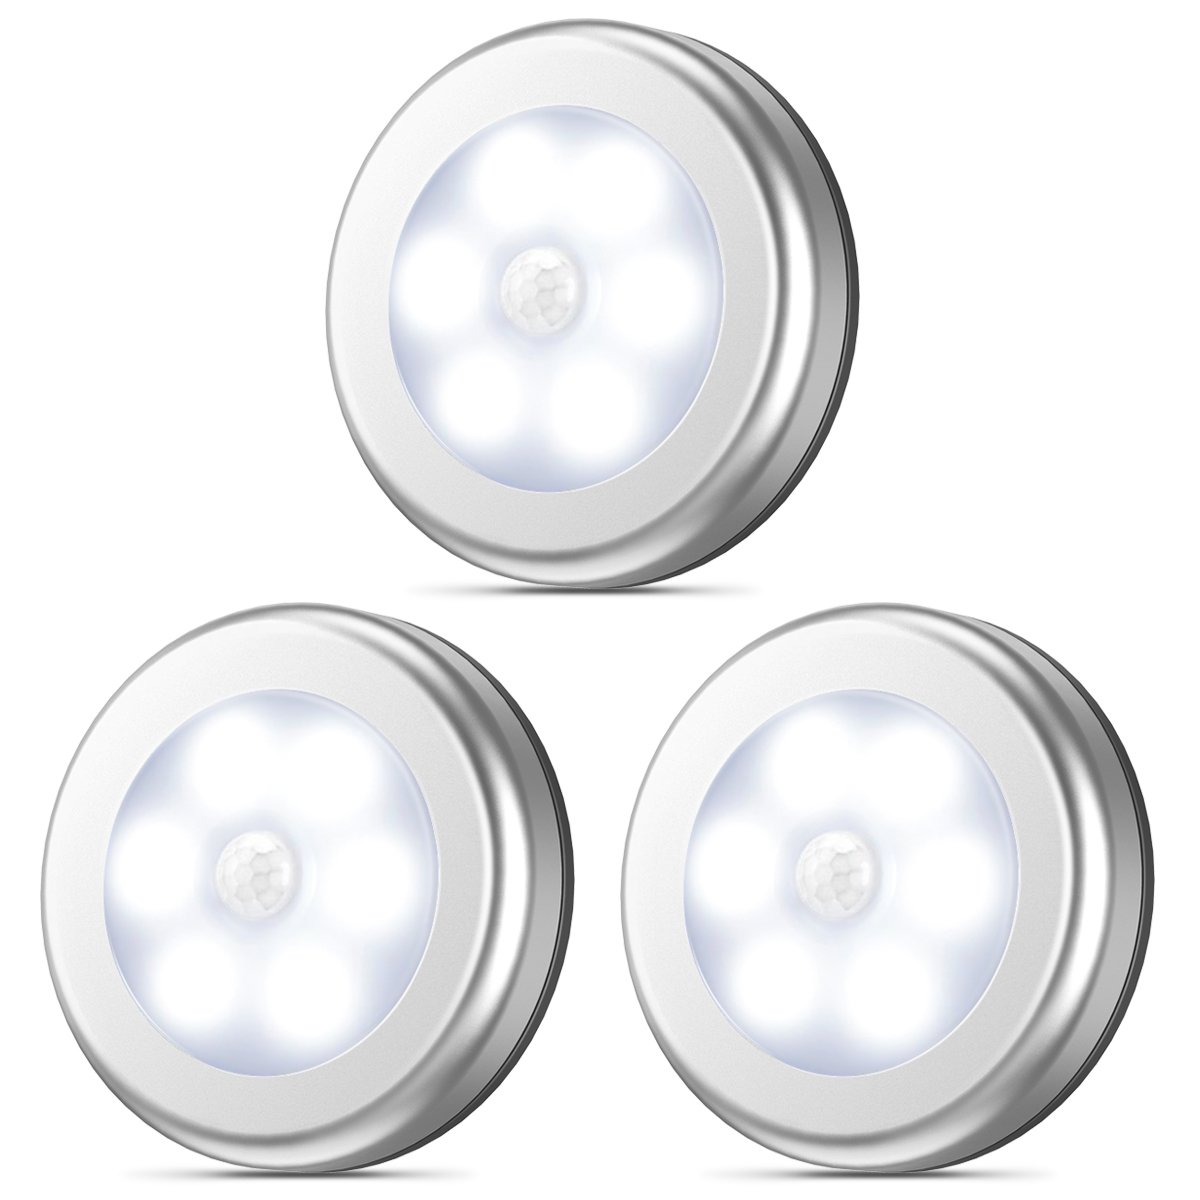 AMIR Motion Sensor Light, Stick-Anywhere Cordless Battery-Powered LED Night Light, Closet Lights,Stair Lights, Tap Lights, Safe Lights for Hallway, Bathroom, Bedroom, Kitchen (White - Pack of 3)